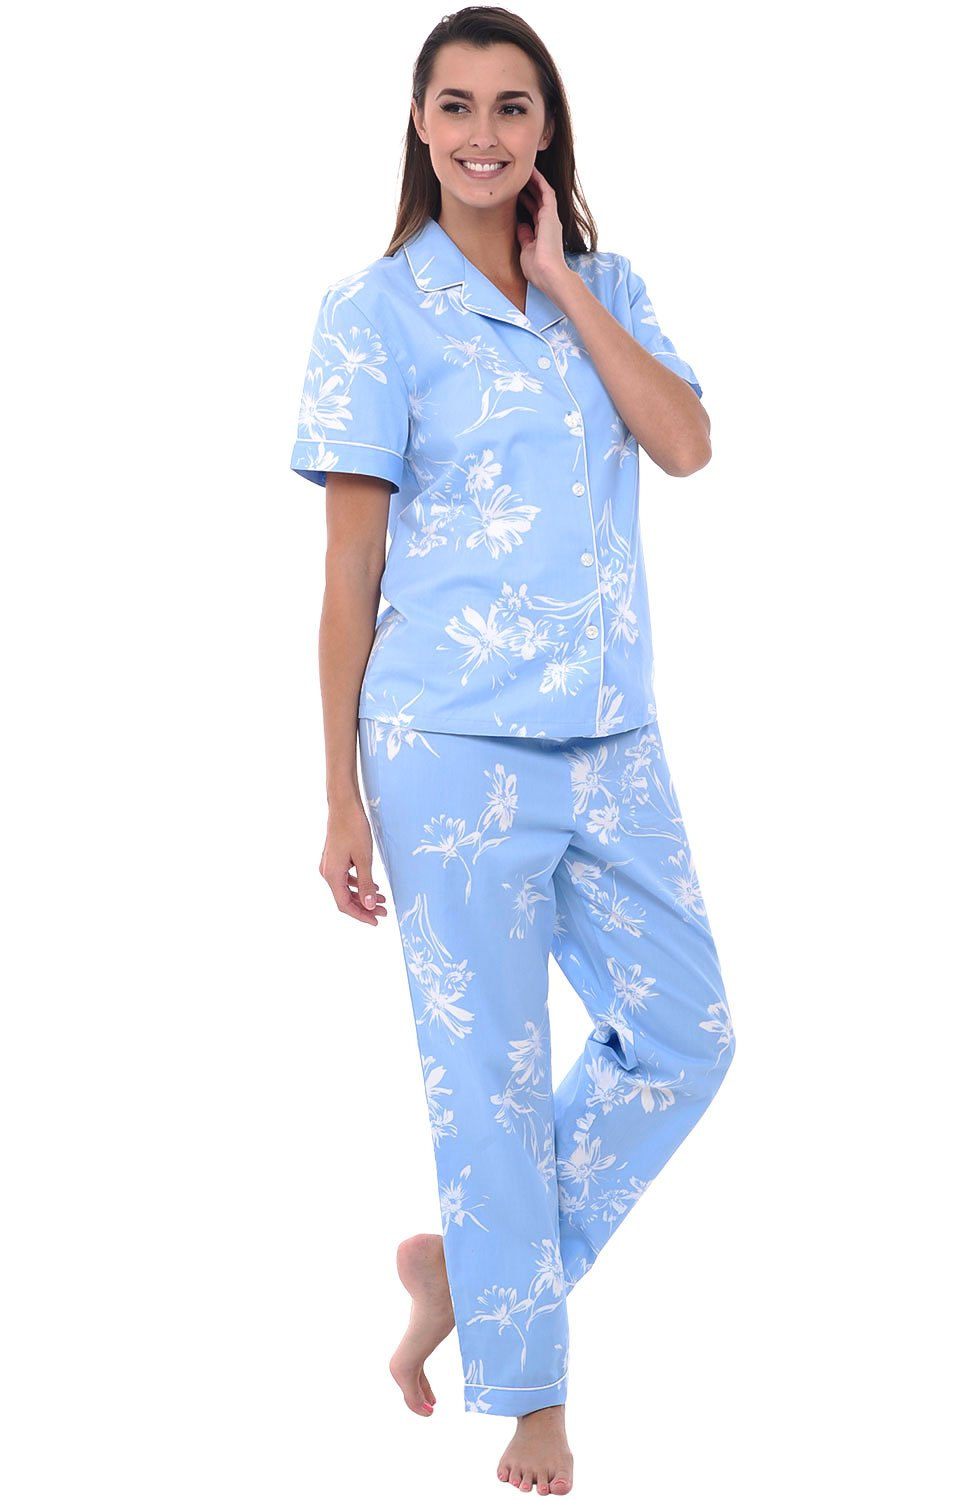 Alexander Del Rossa Womens Cotton Pajamas, Woven Pj Set with Pants, Large Blue with White Flowers Floral, Piping (A0518B82LG)